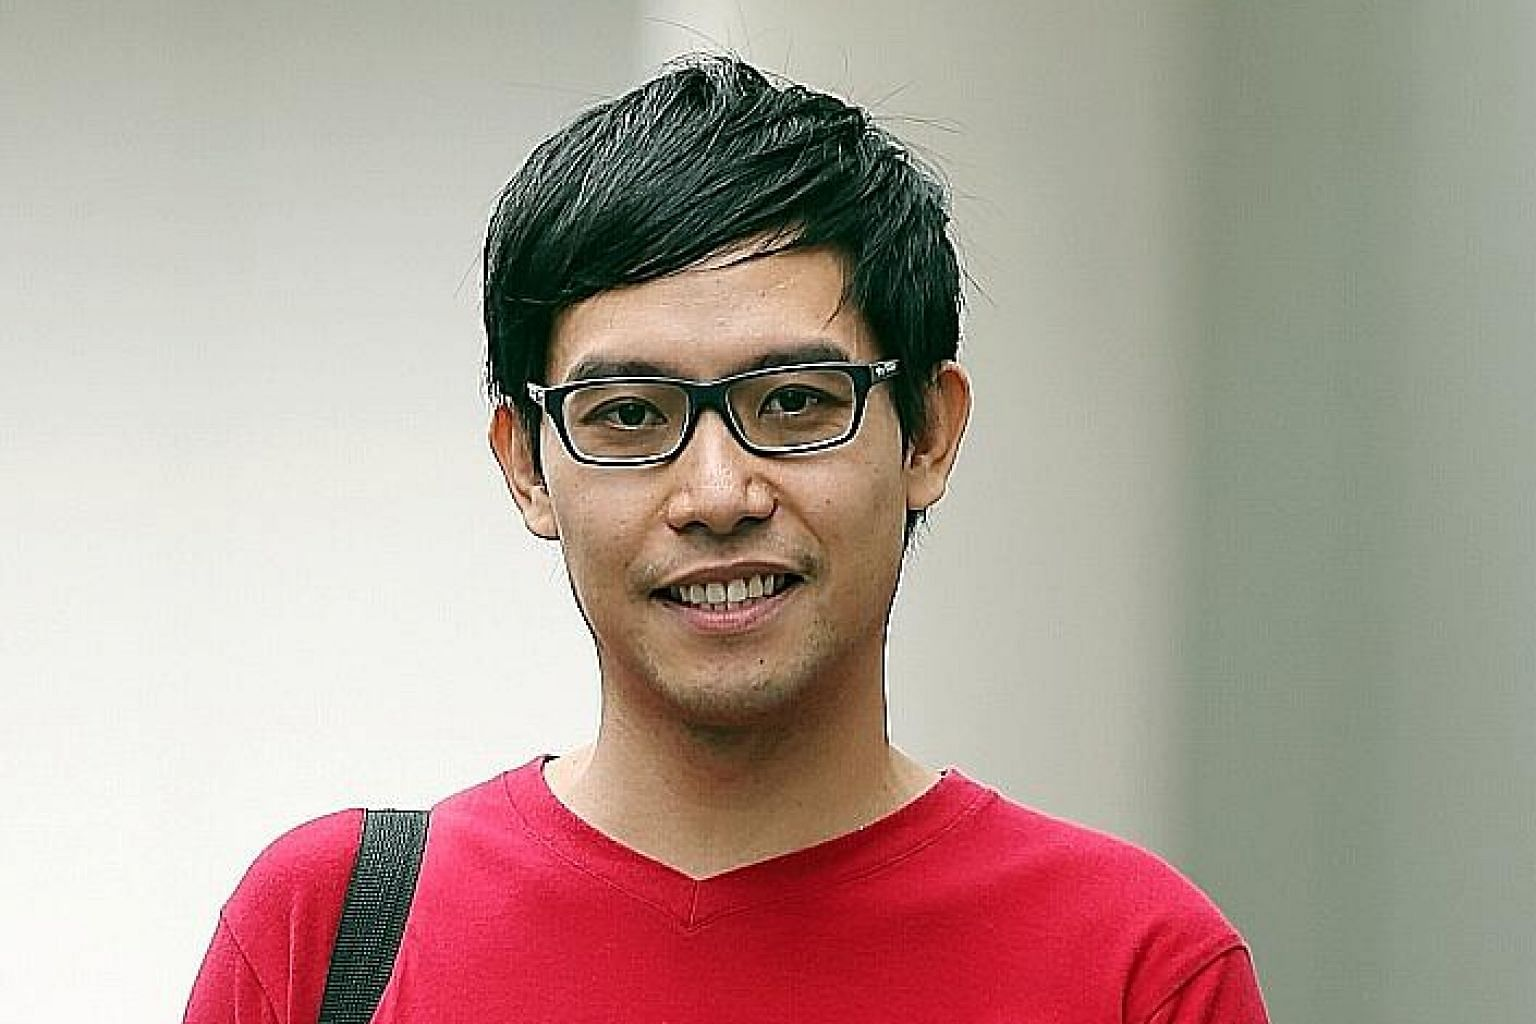 Mr Ngerng raised more than $12,000 over the past two days after making an online appeal to the public for funds.